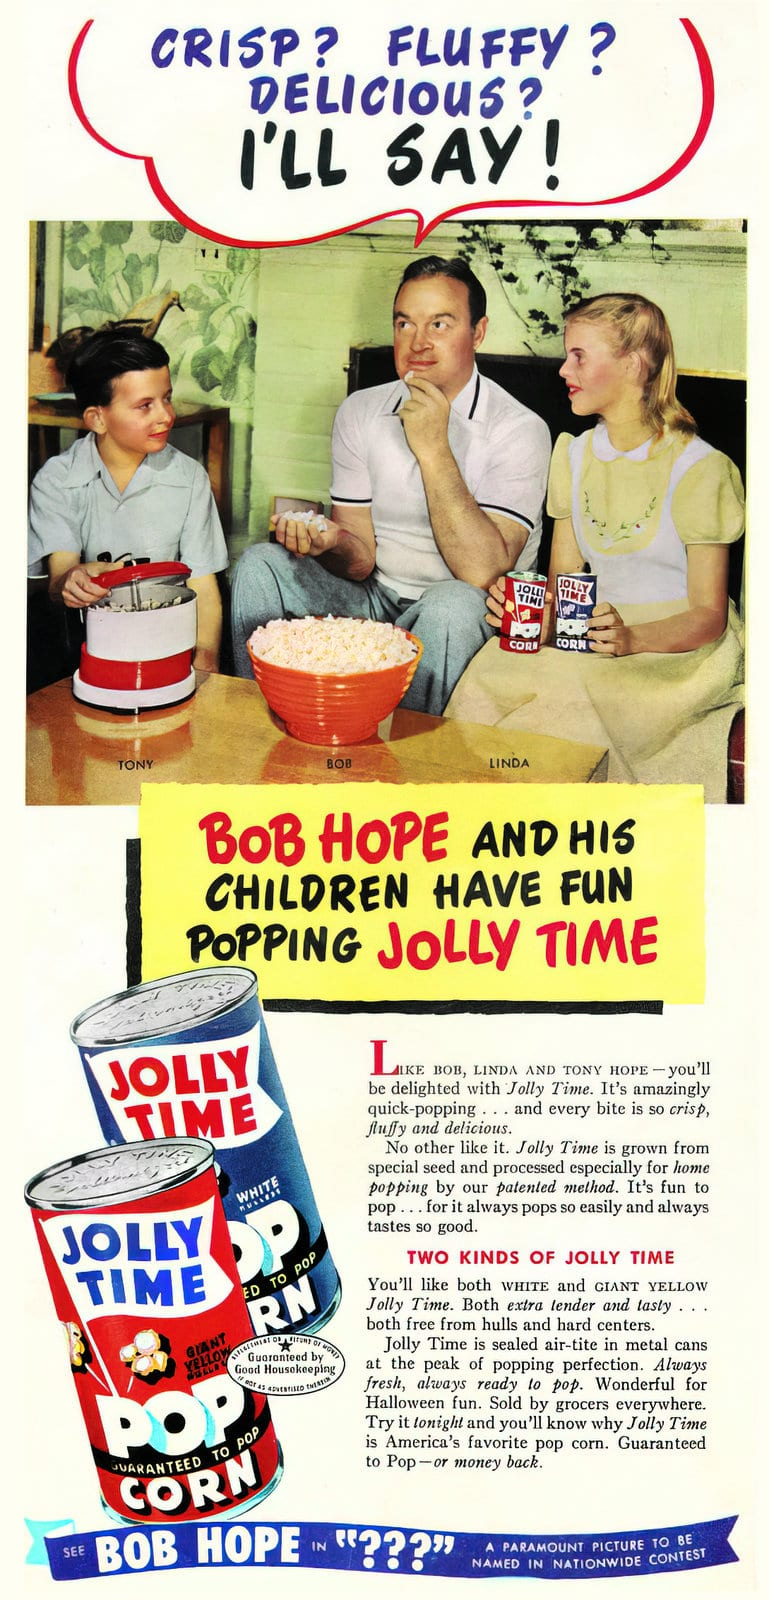 Bob Hope for Jolly Time pop corn in cans (1950s)